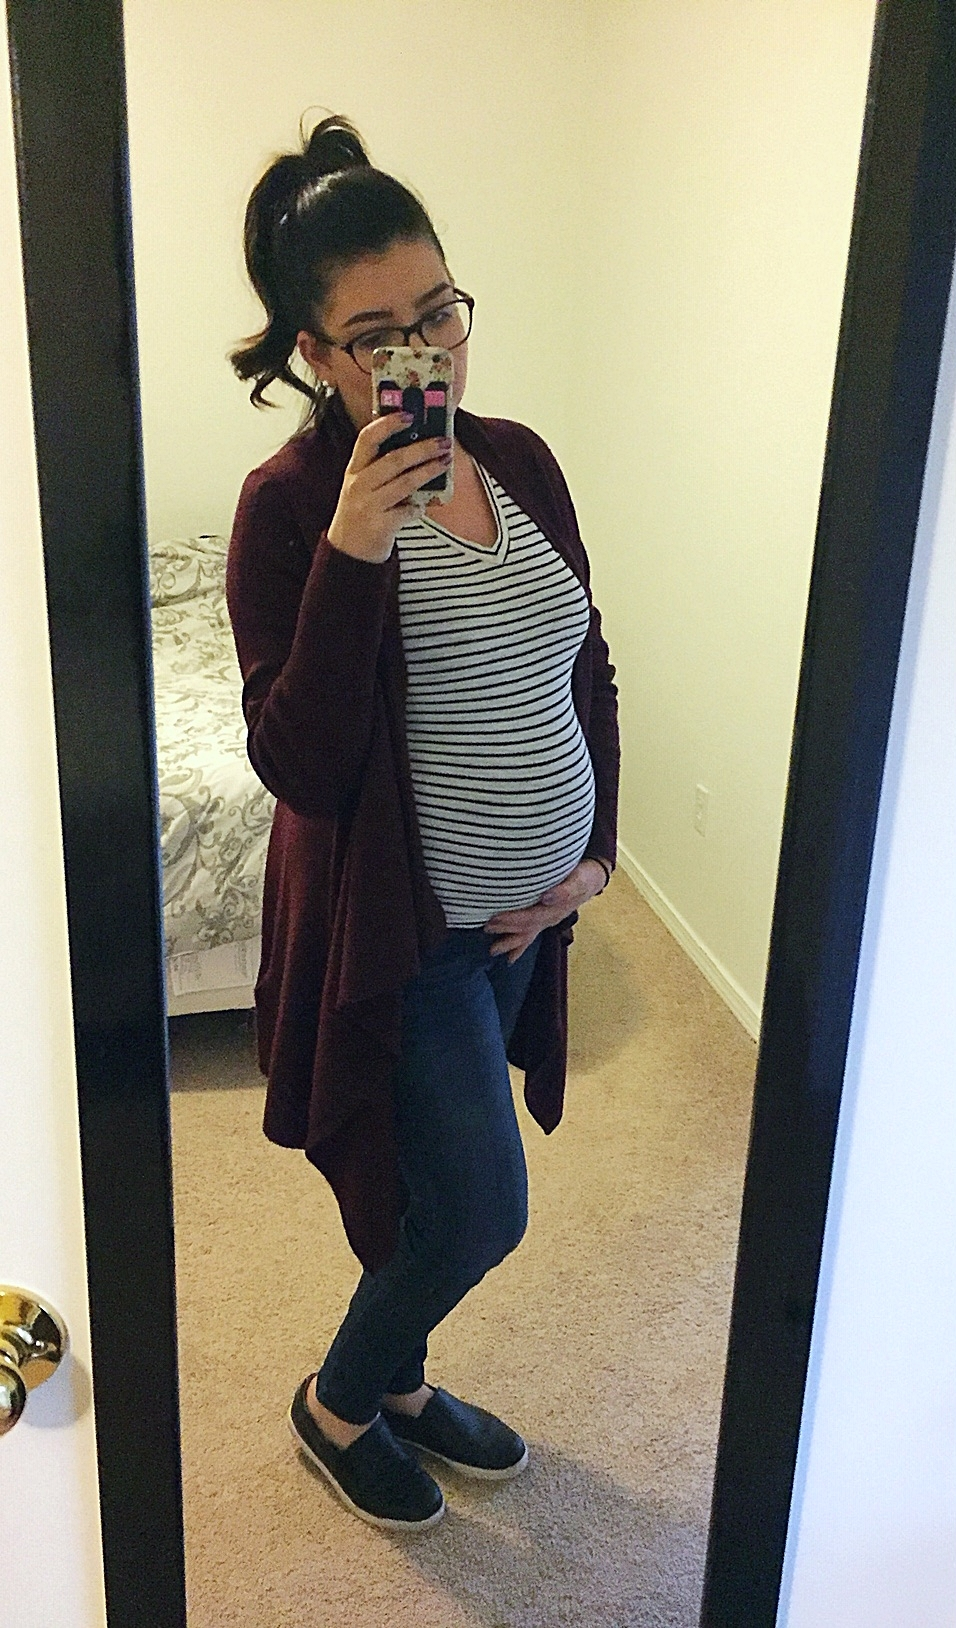 20 Week Bumpdate + Surprise!